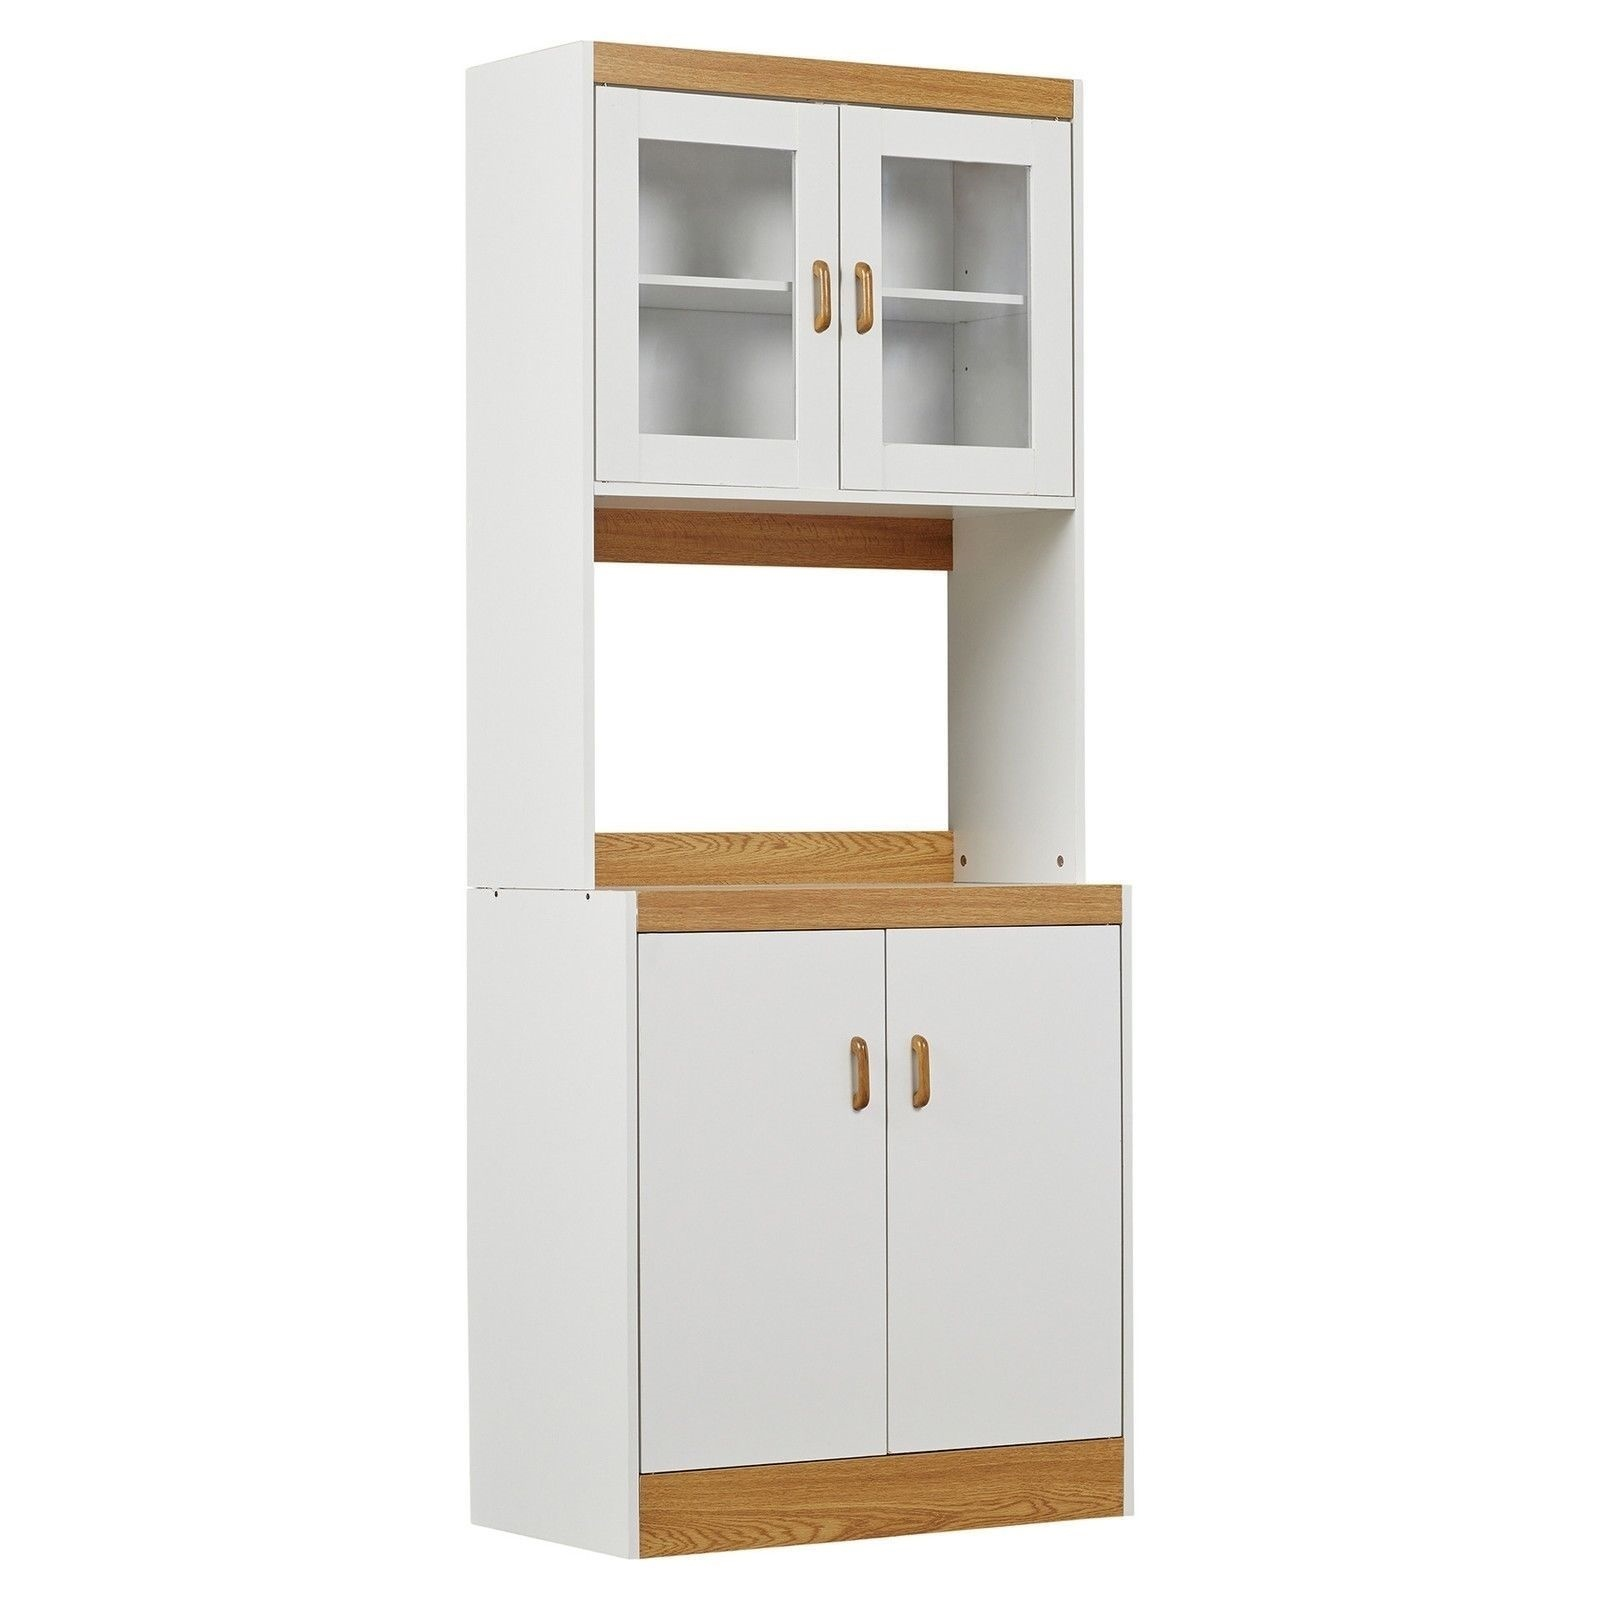 New Tall Kitchen Microwave Stand White Utility Cabinet